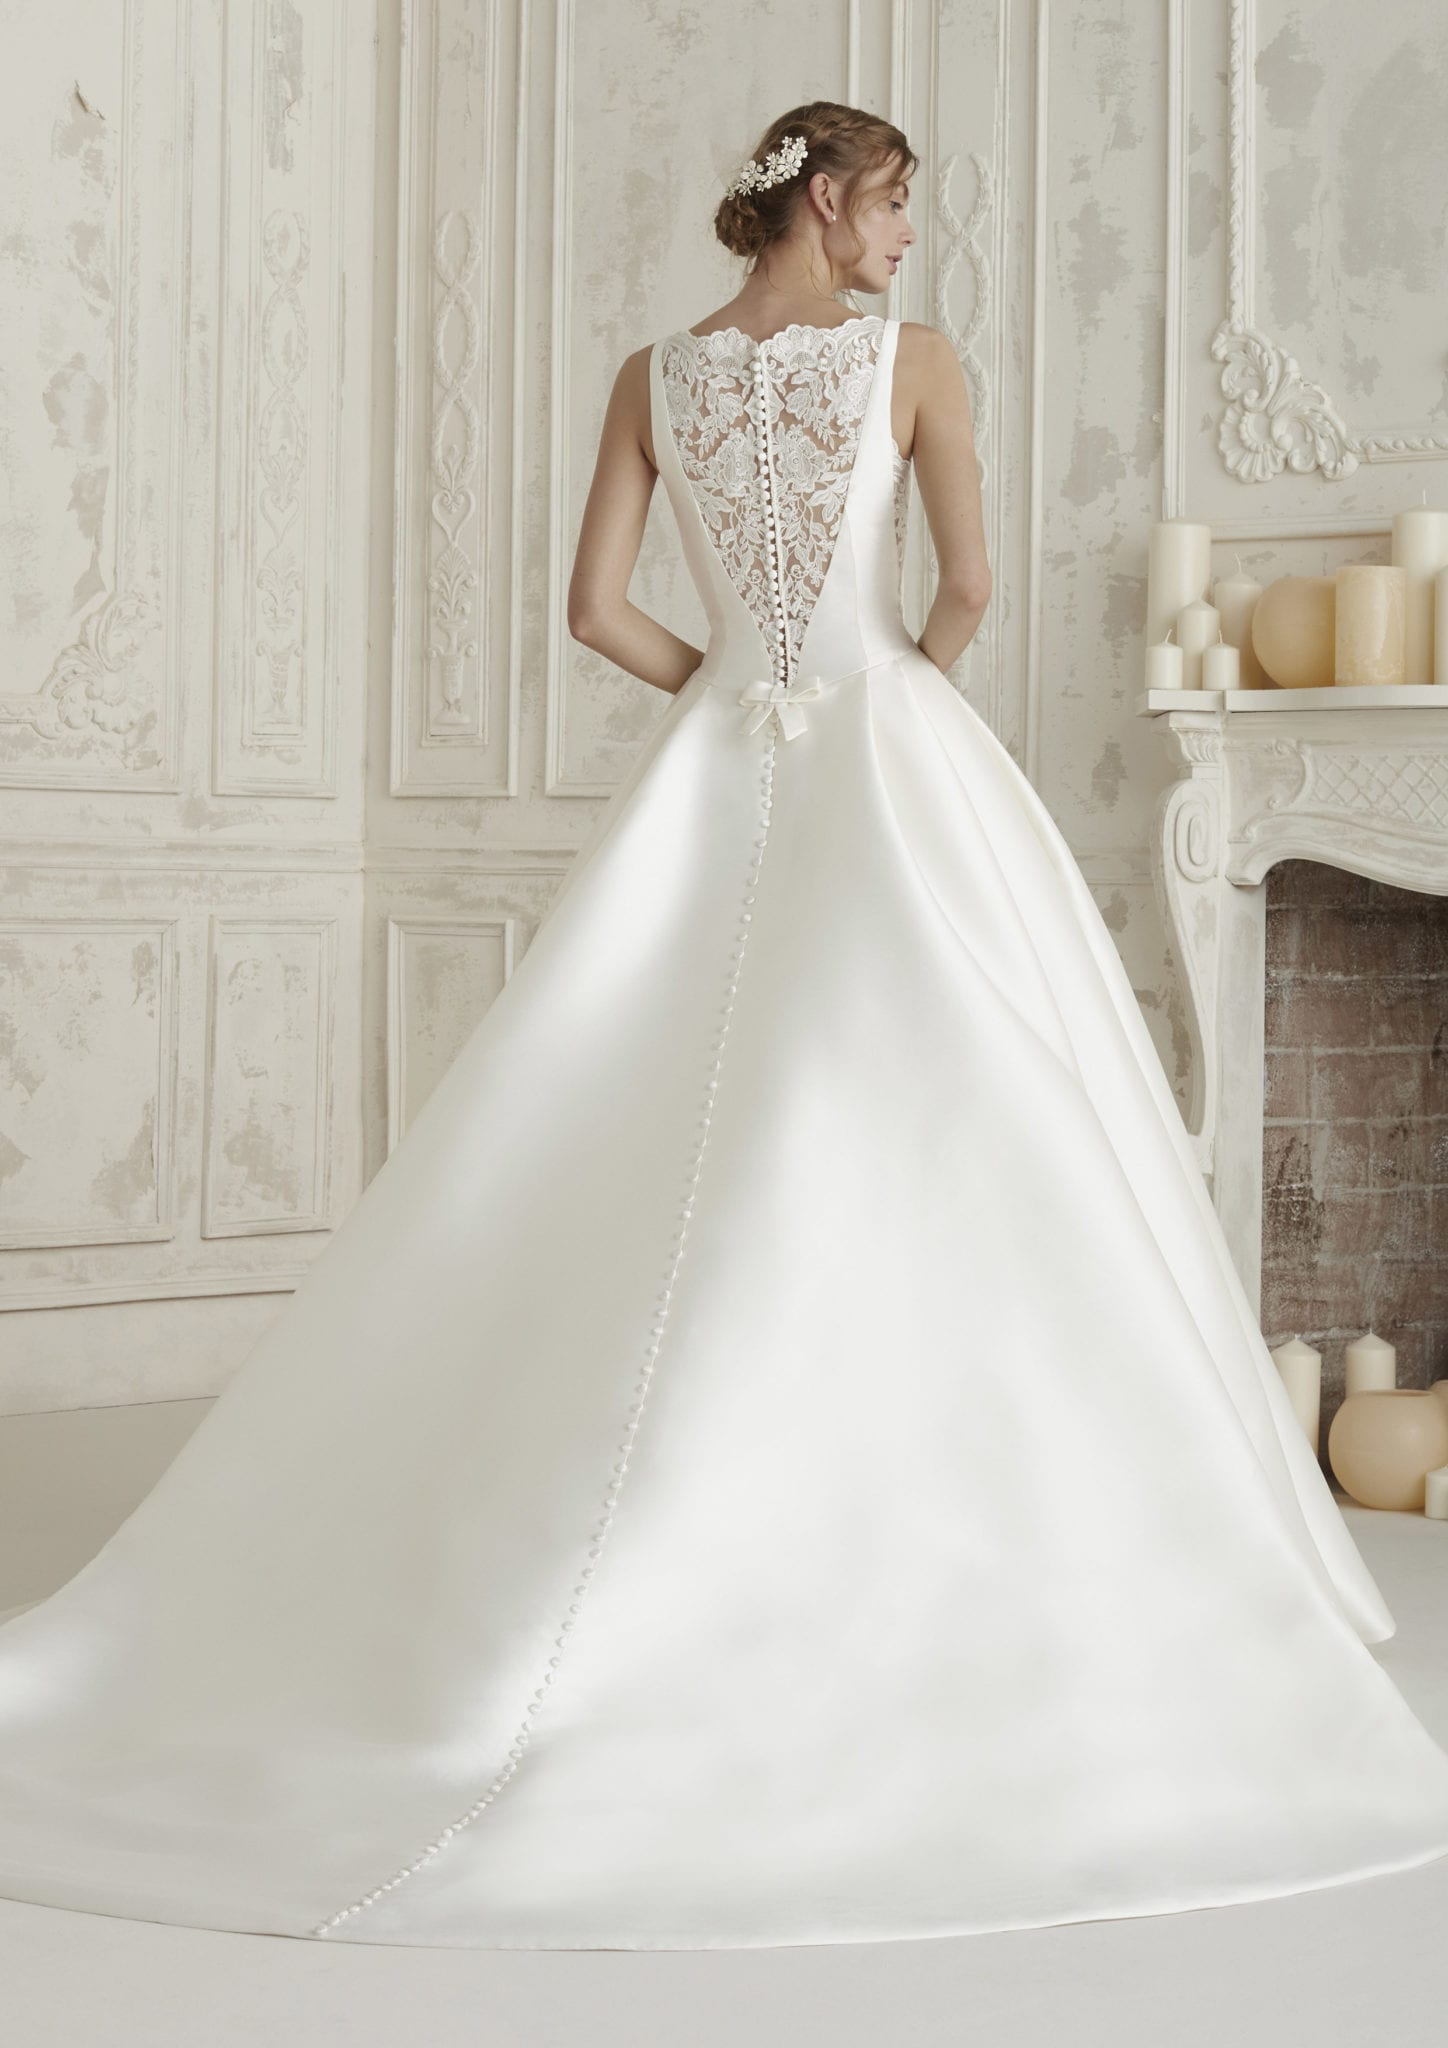 Elenco Wedding Dress